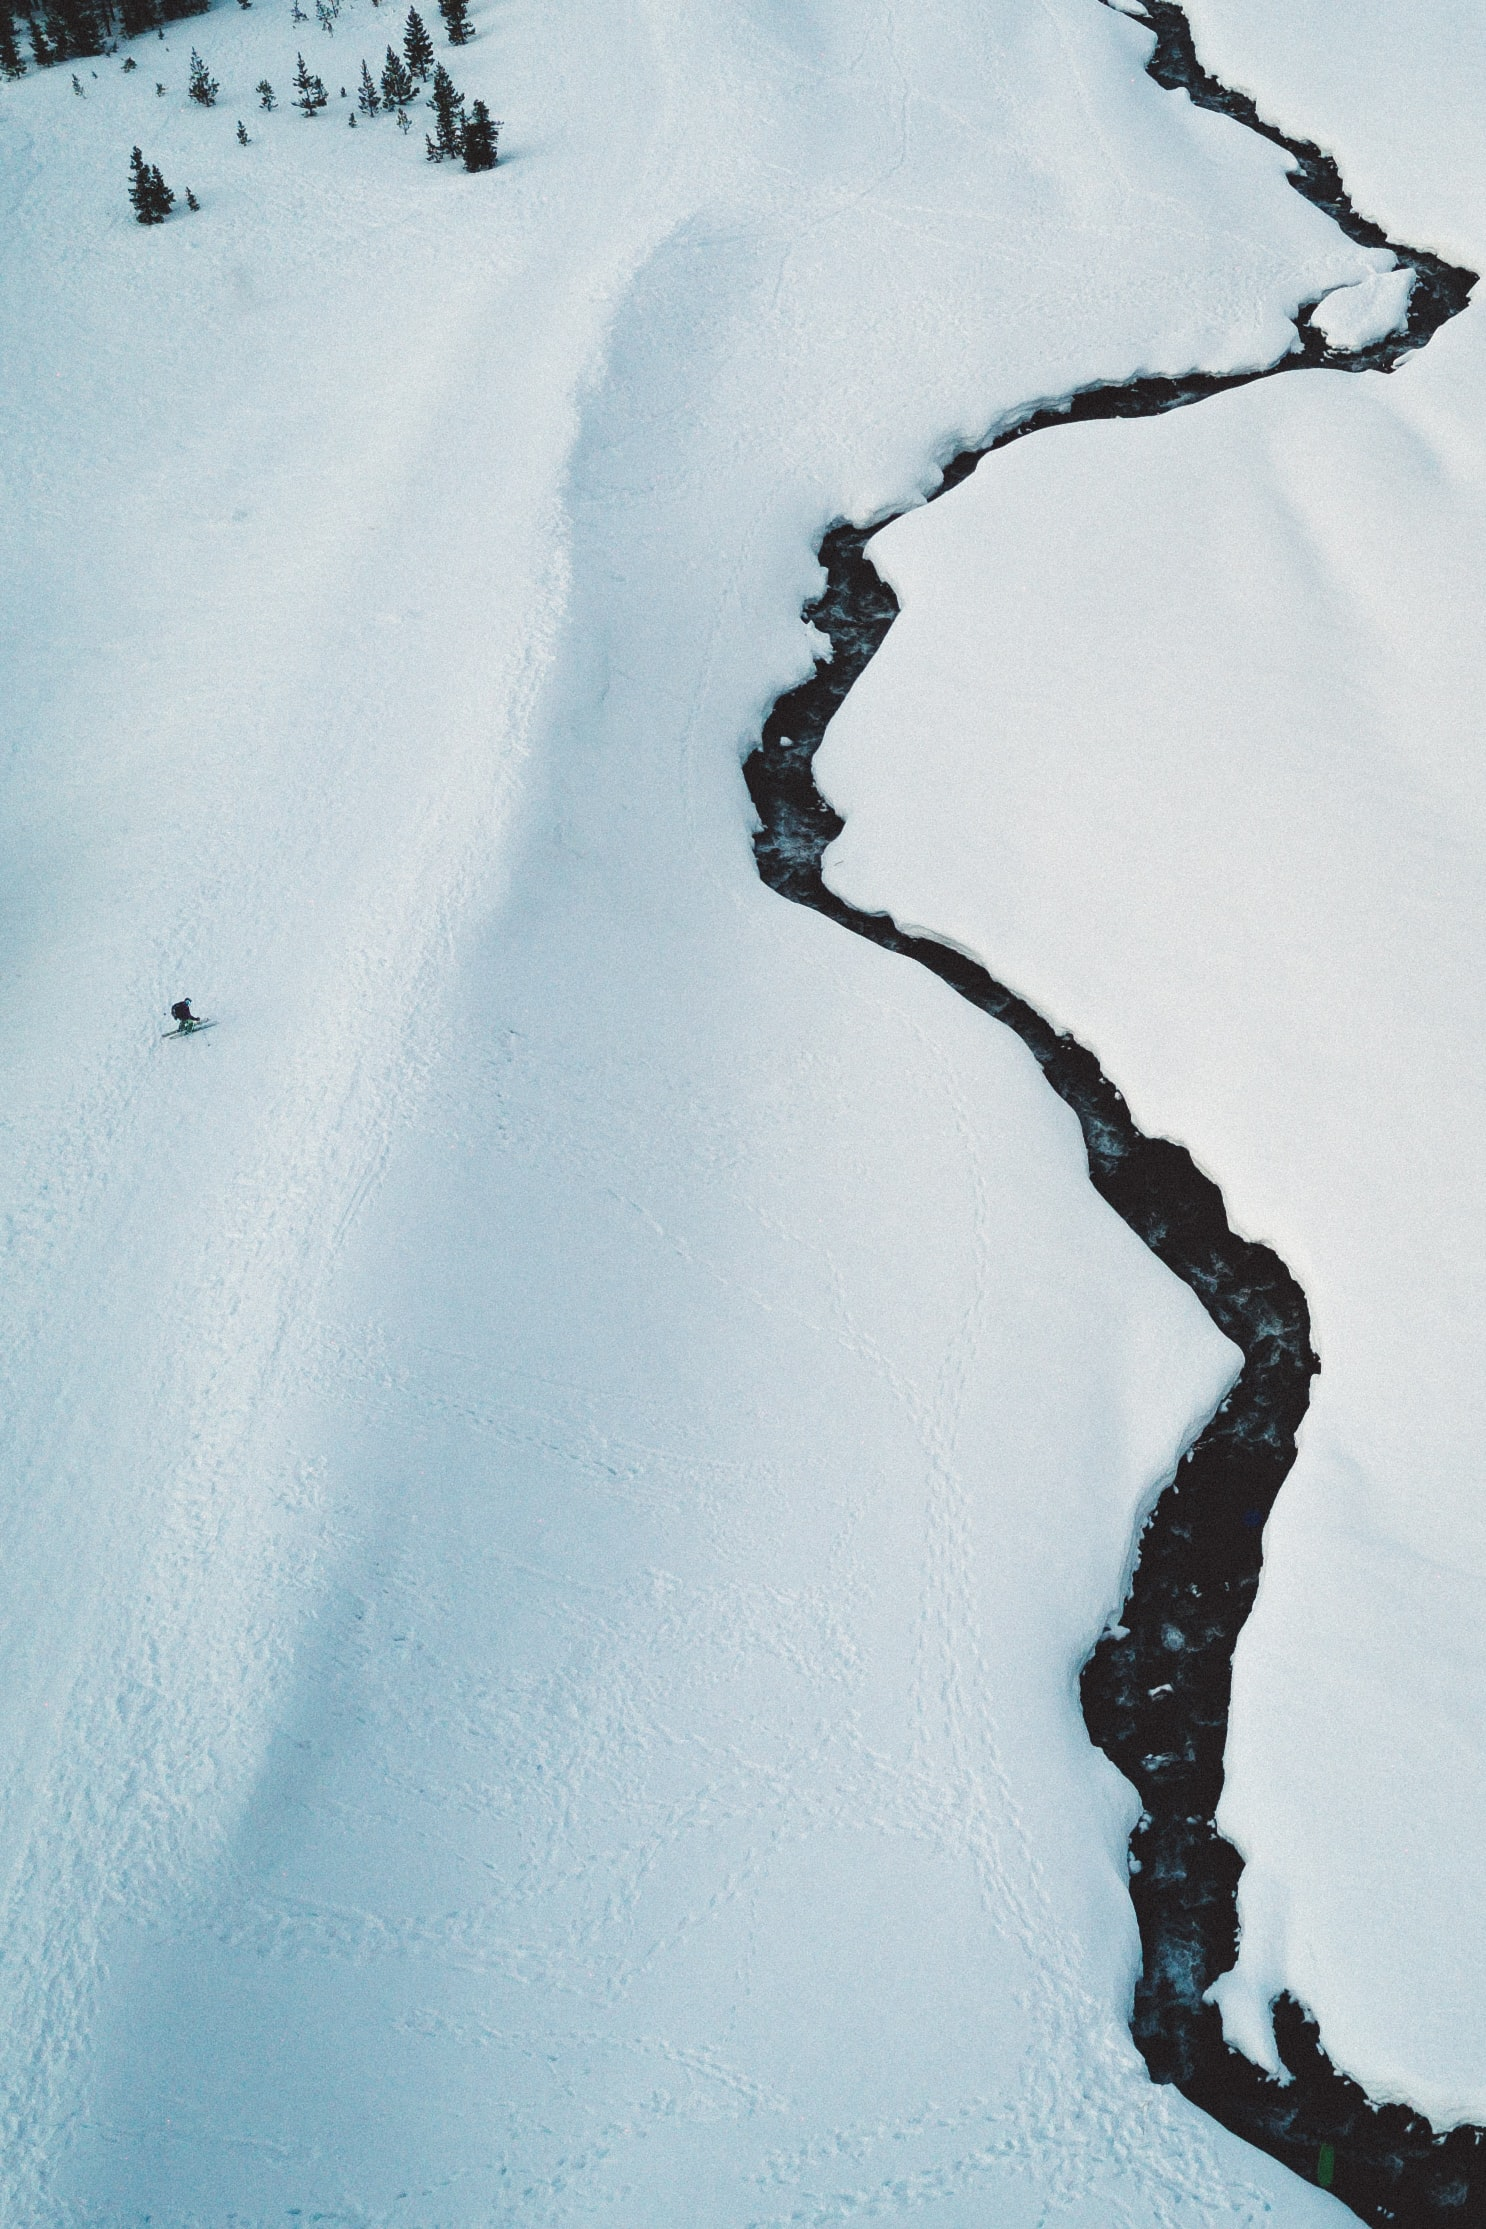 man skiing on snowfield during daytime